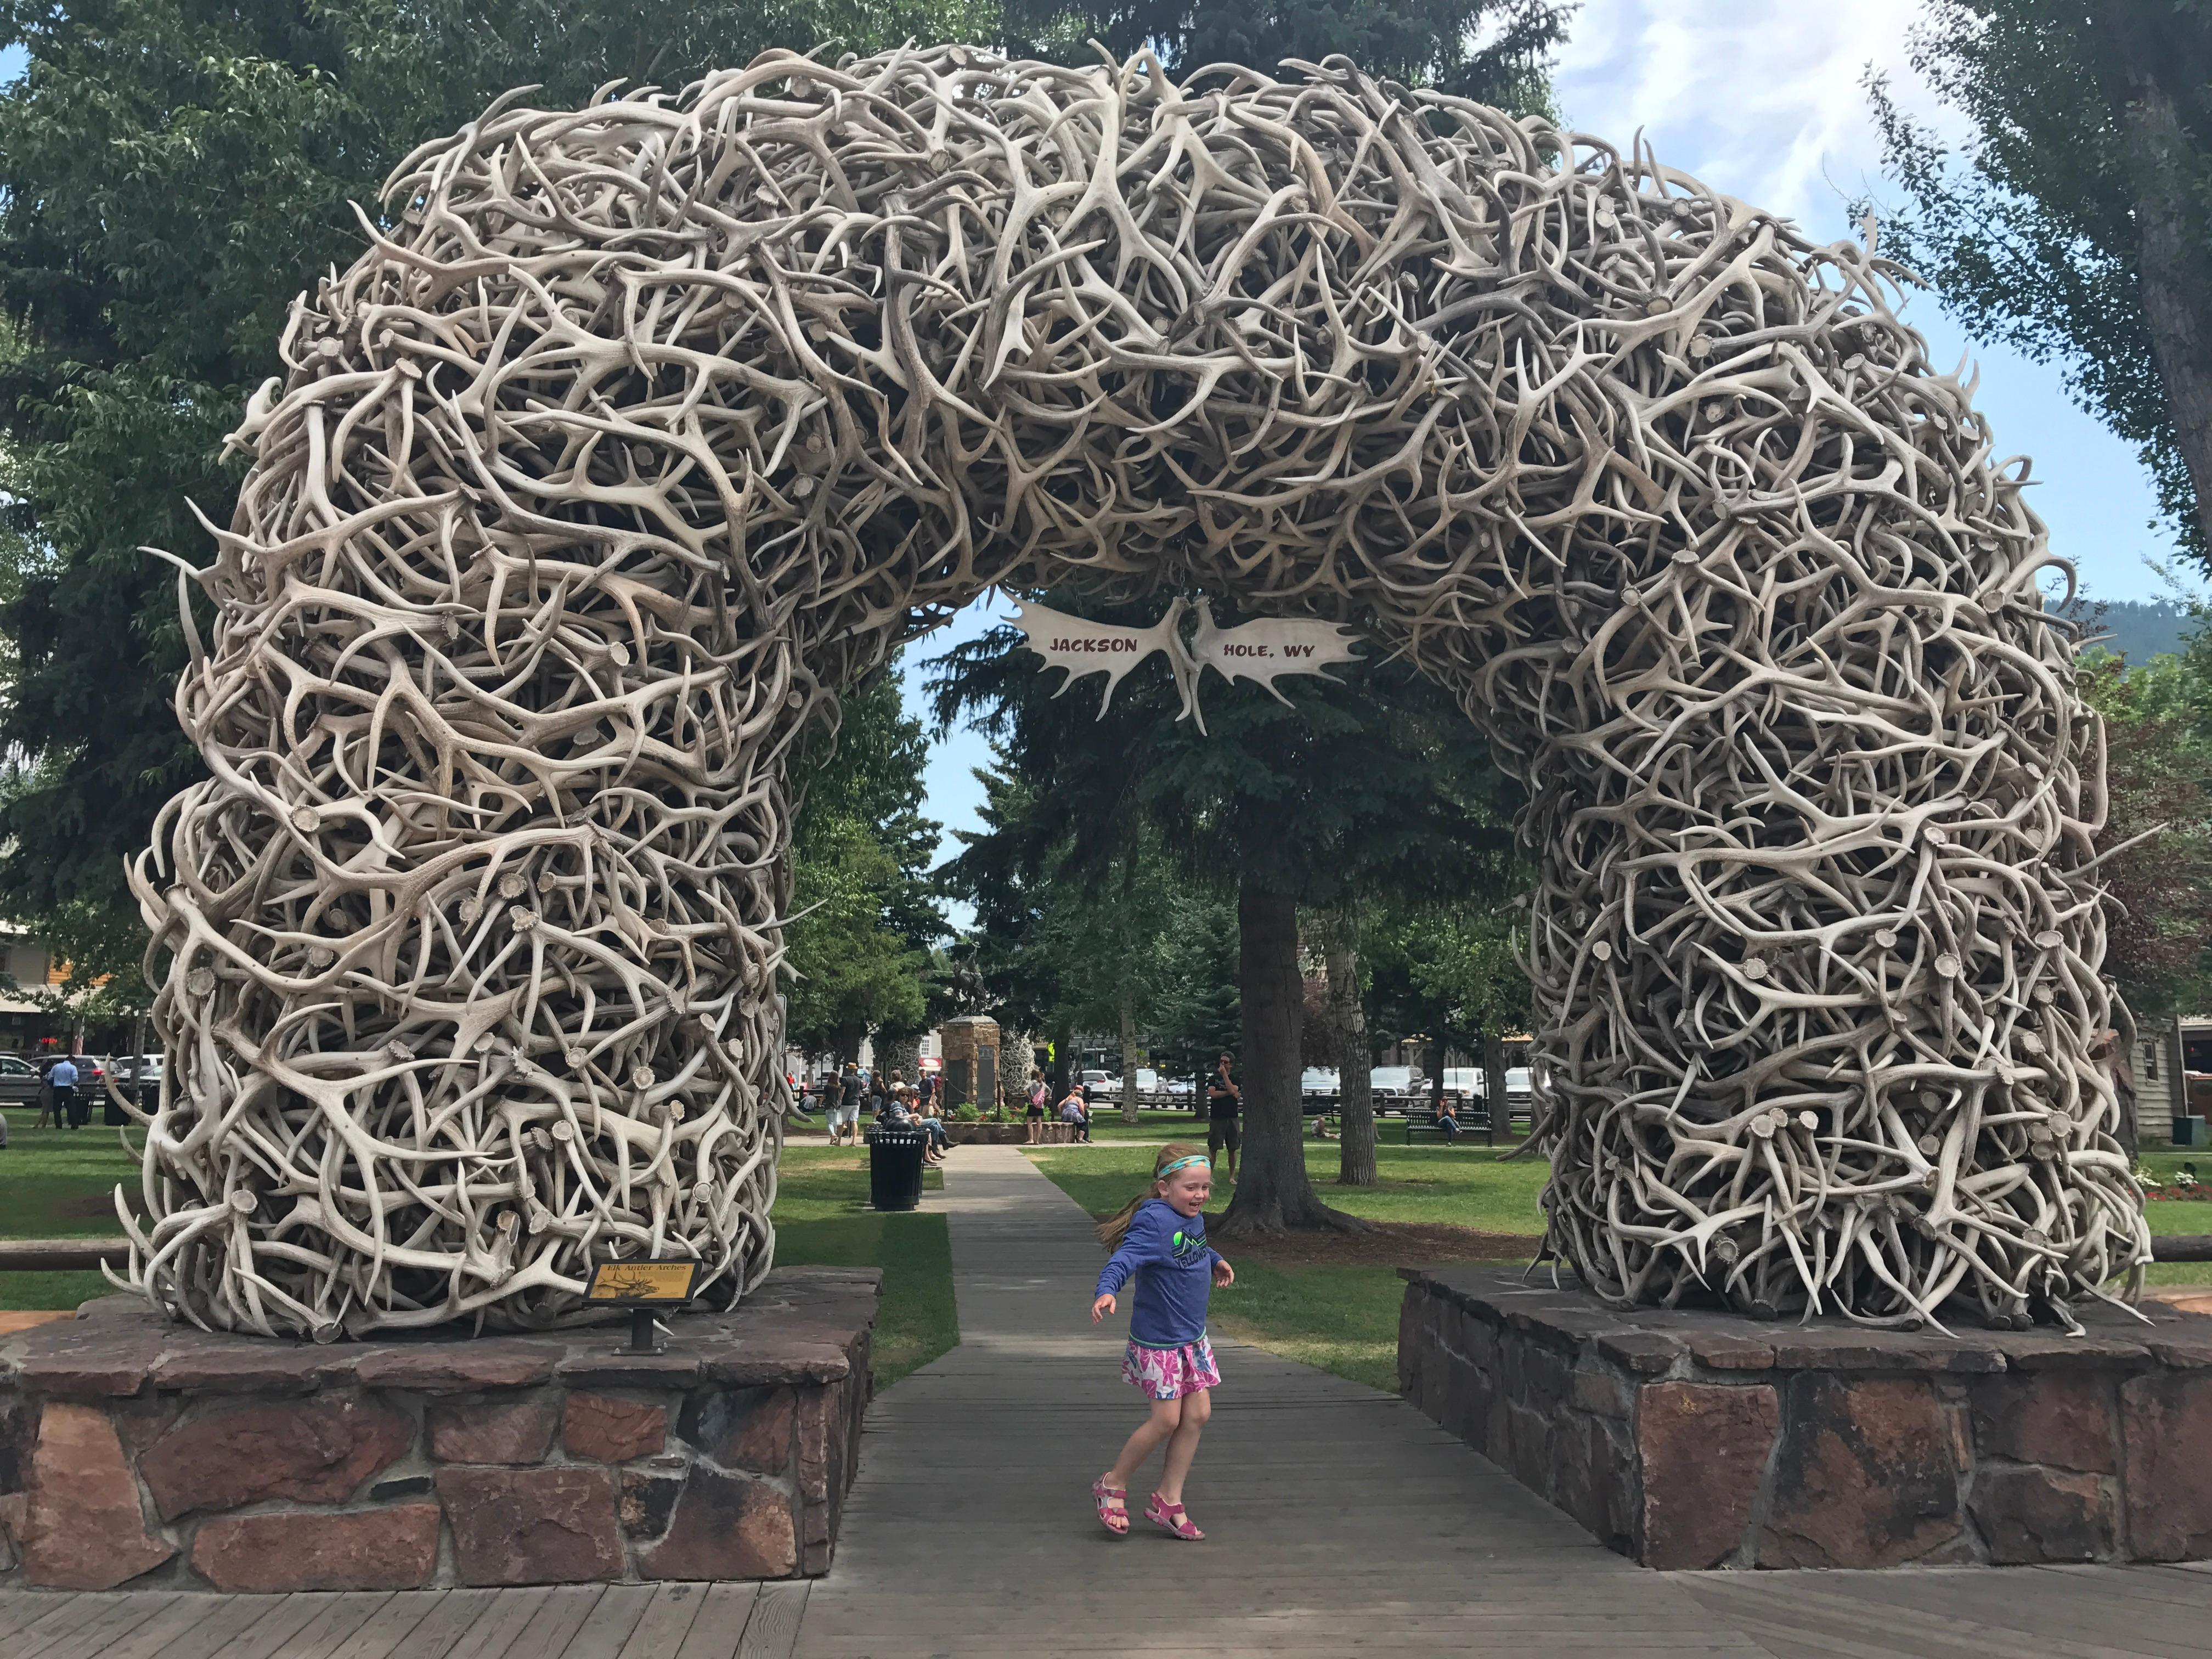 The entrances to Jackson Hole's Town Square are hundreds of antlers. (Image: Rebecca Mongrain/Seattle Refined)